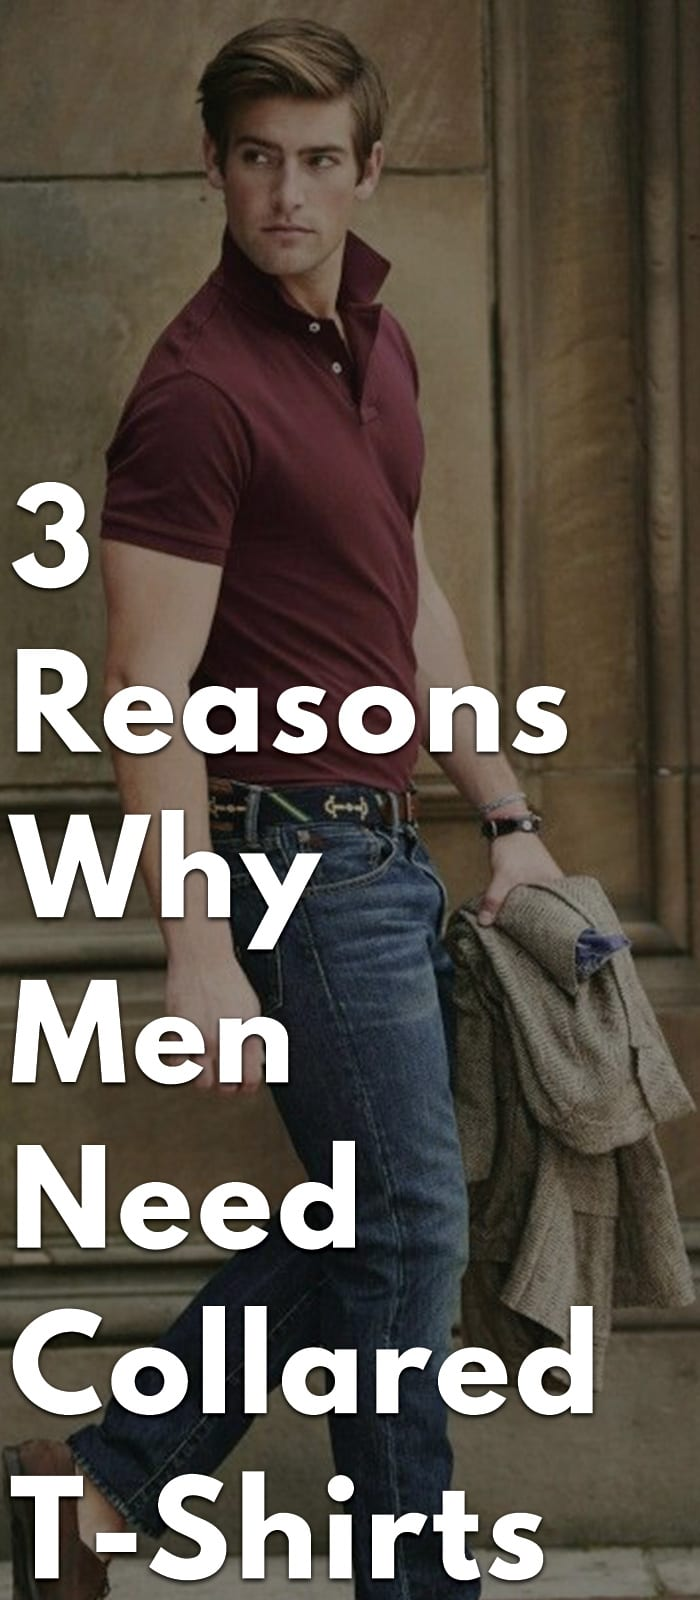 3-Reasons-Why-Men-Need-Collared-T-Shirts